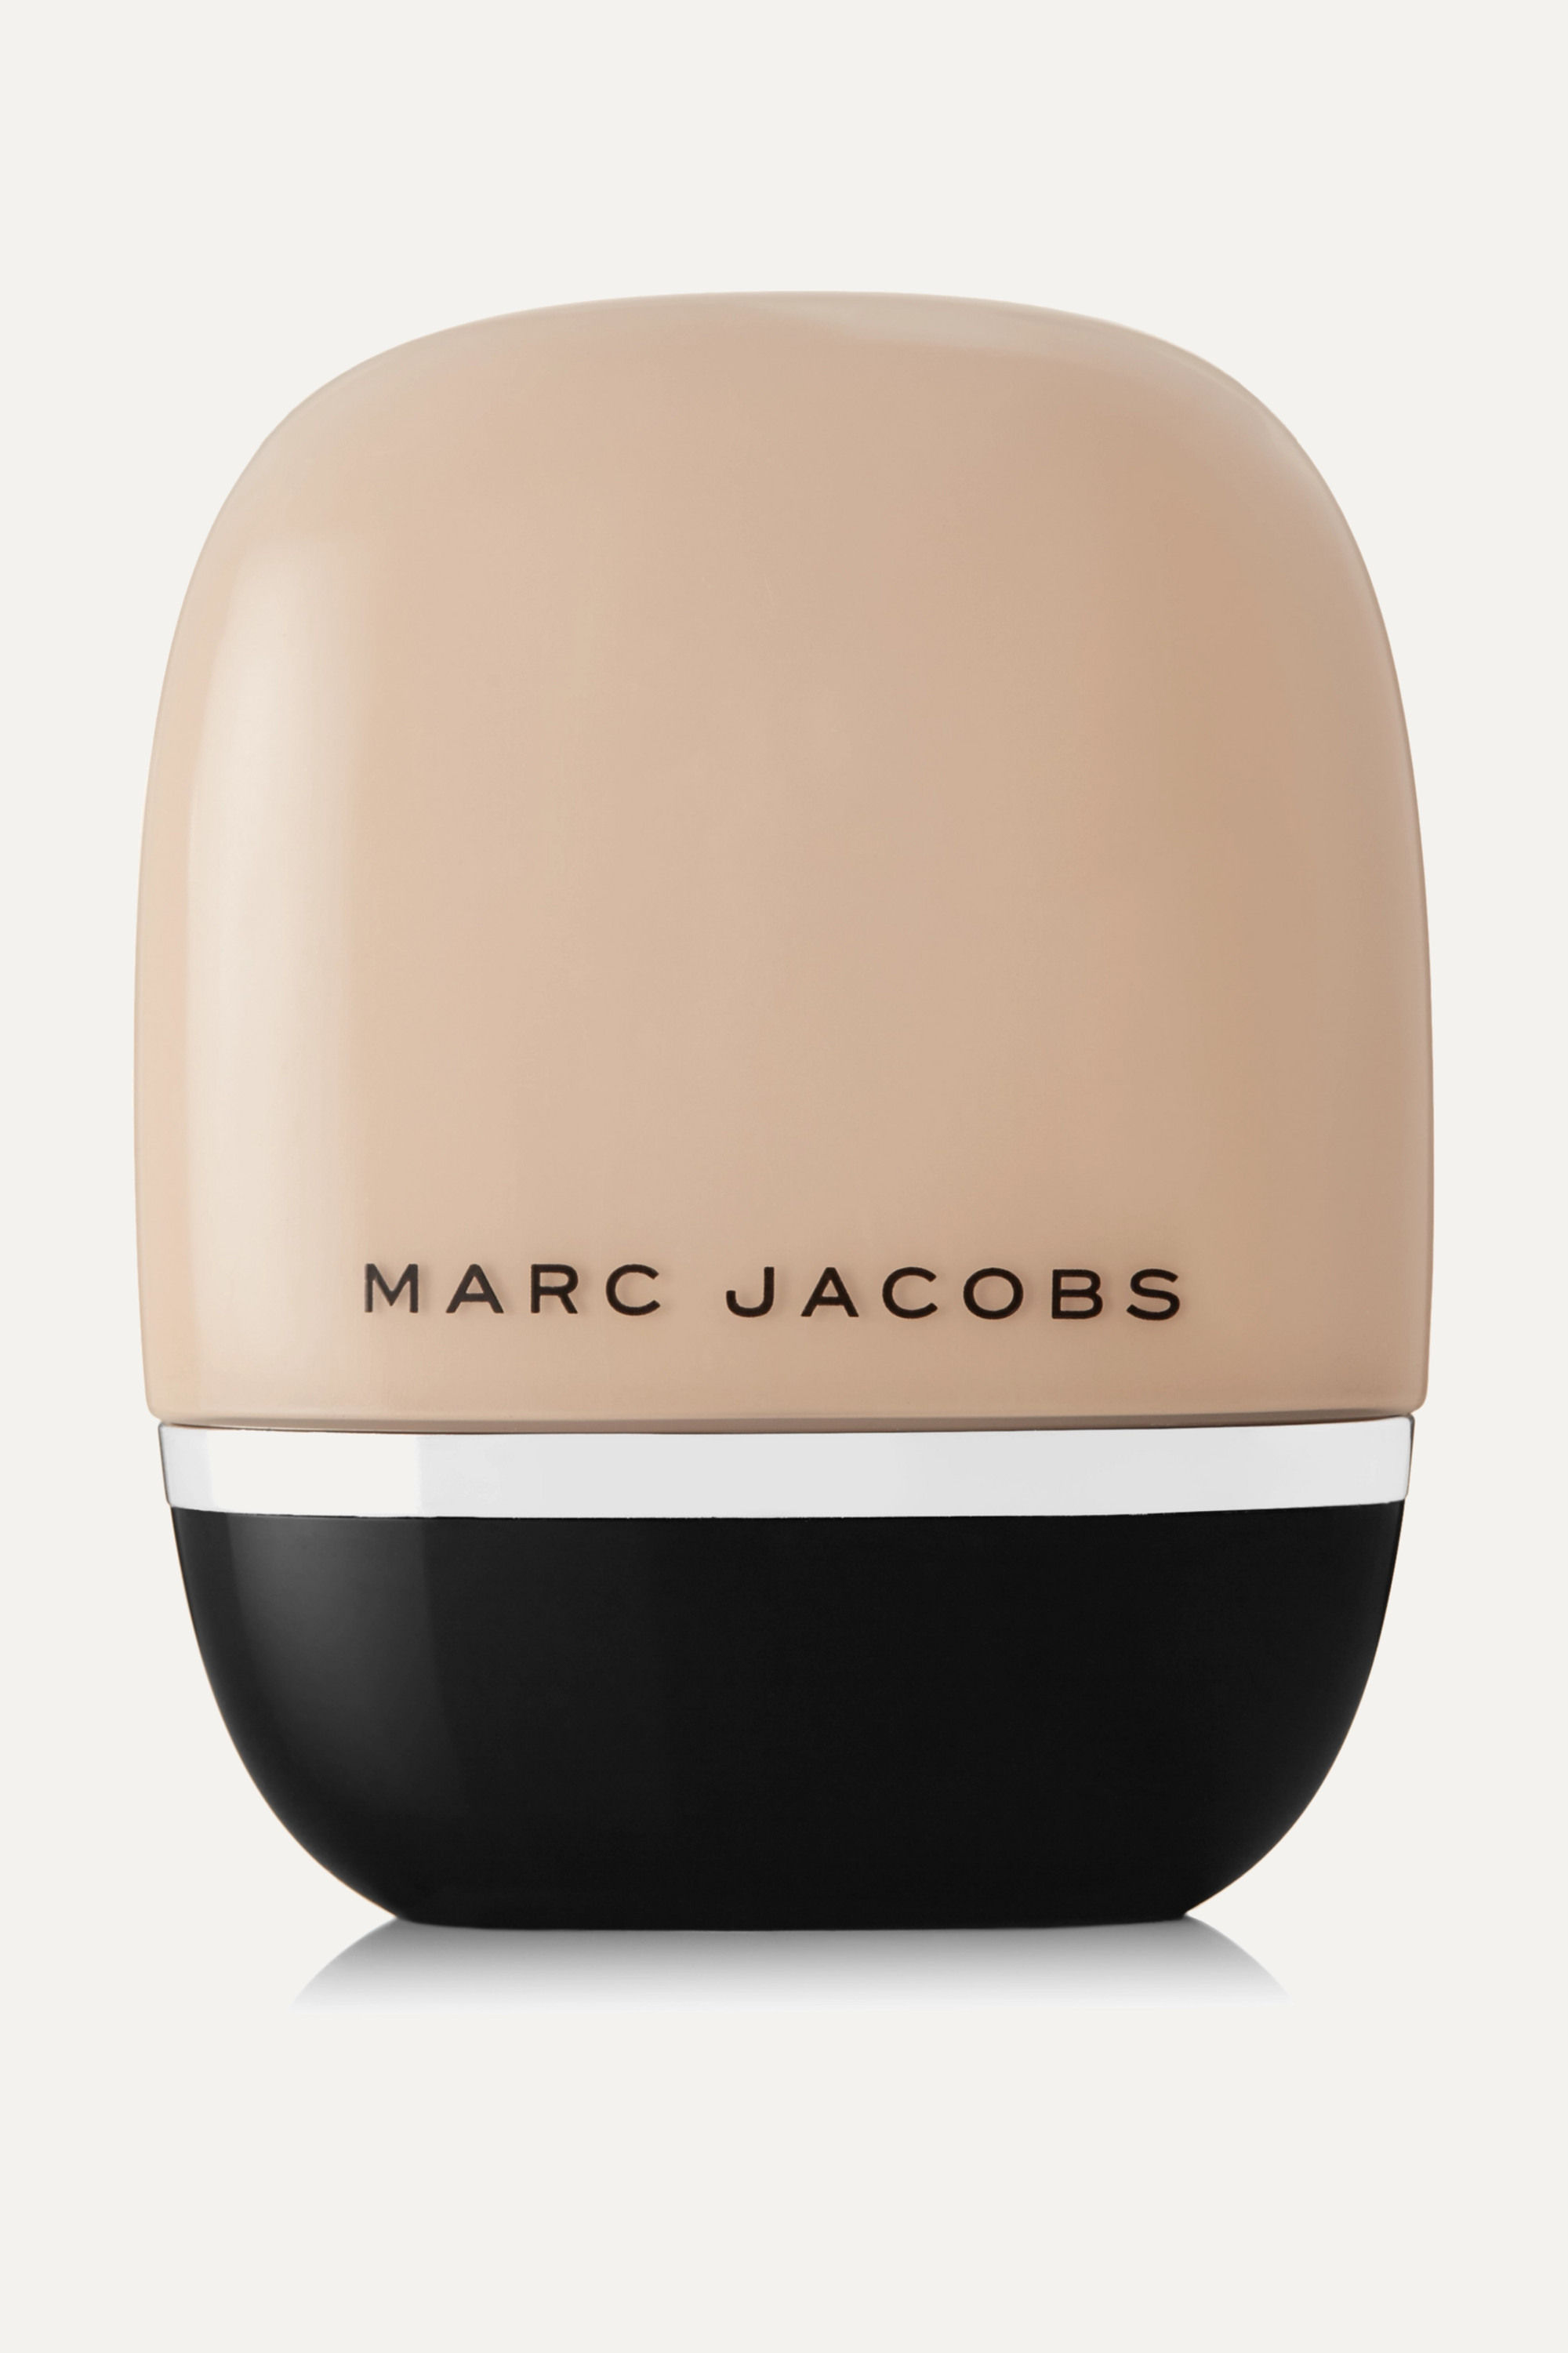 Marc Jacobs Beauty Shameless Youthful Look 24 Hour Foundation - Light Y210